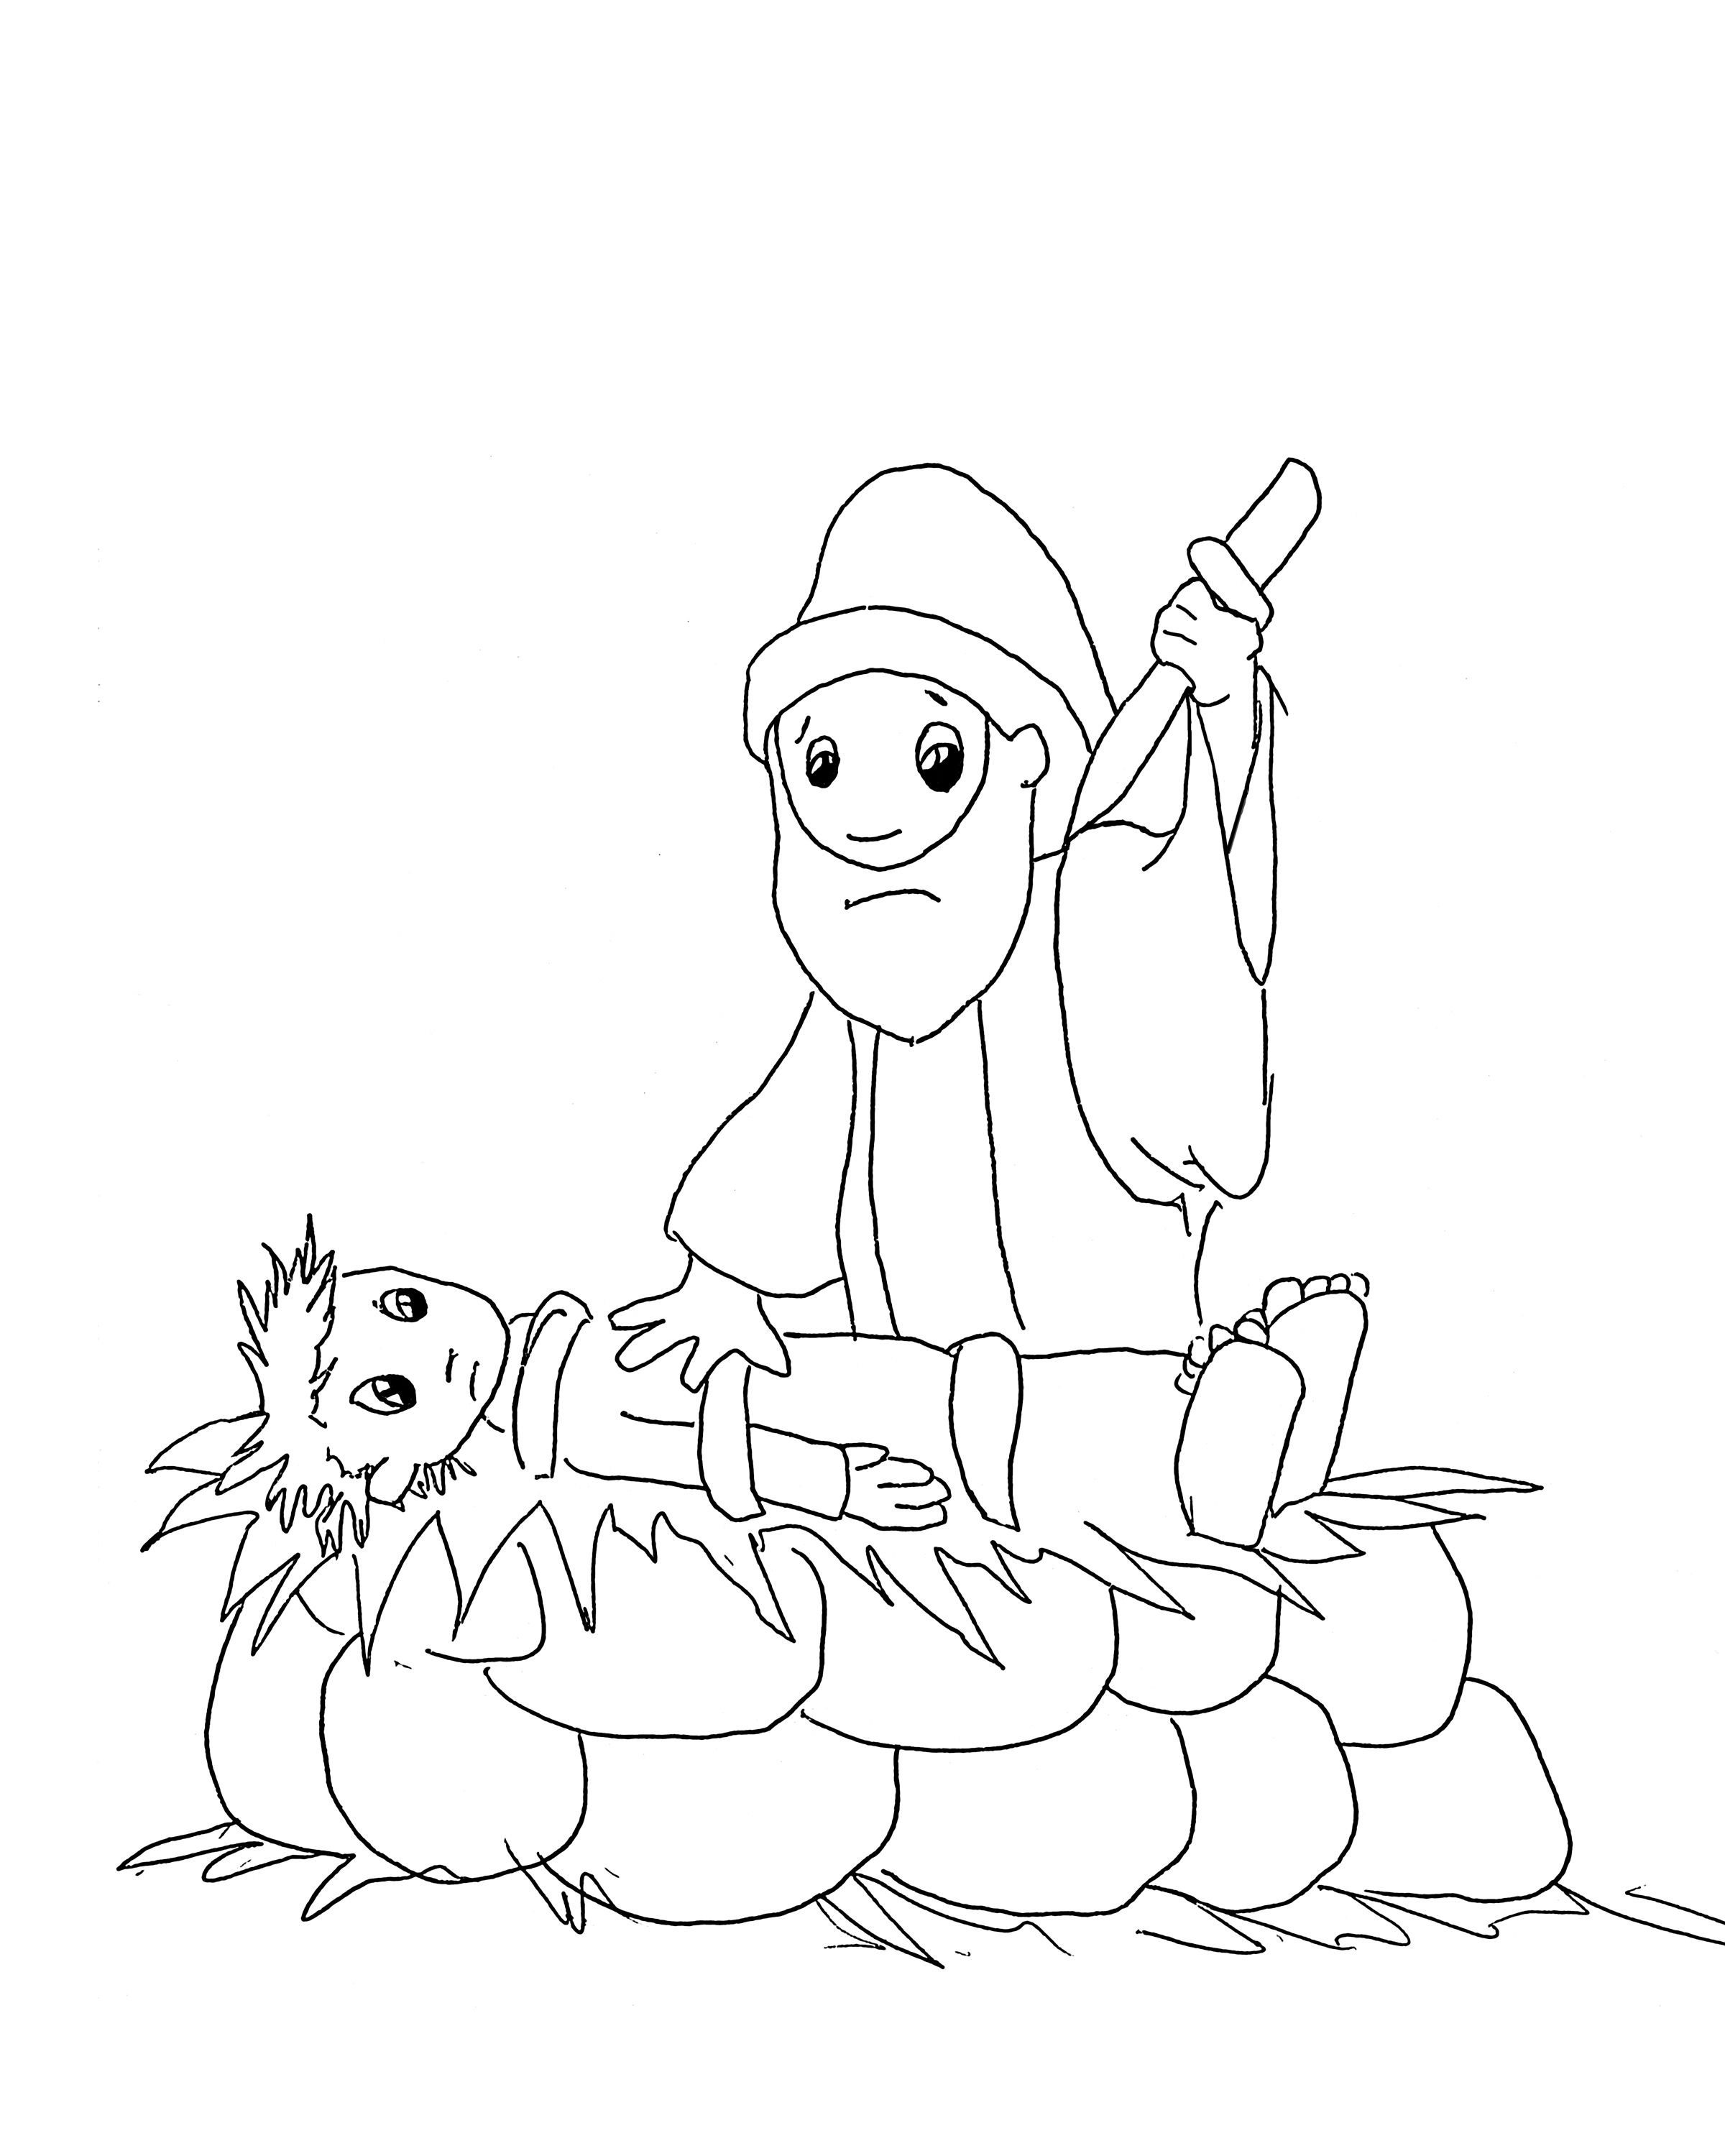 A Picture From One Of The Coloring Books Faithful Abraham